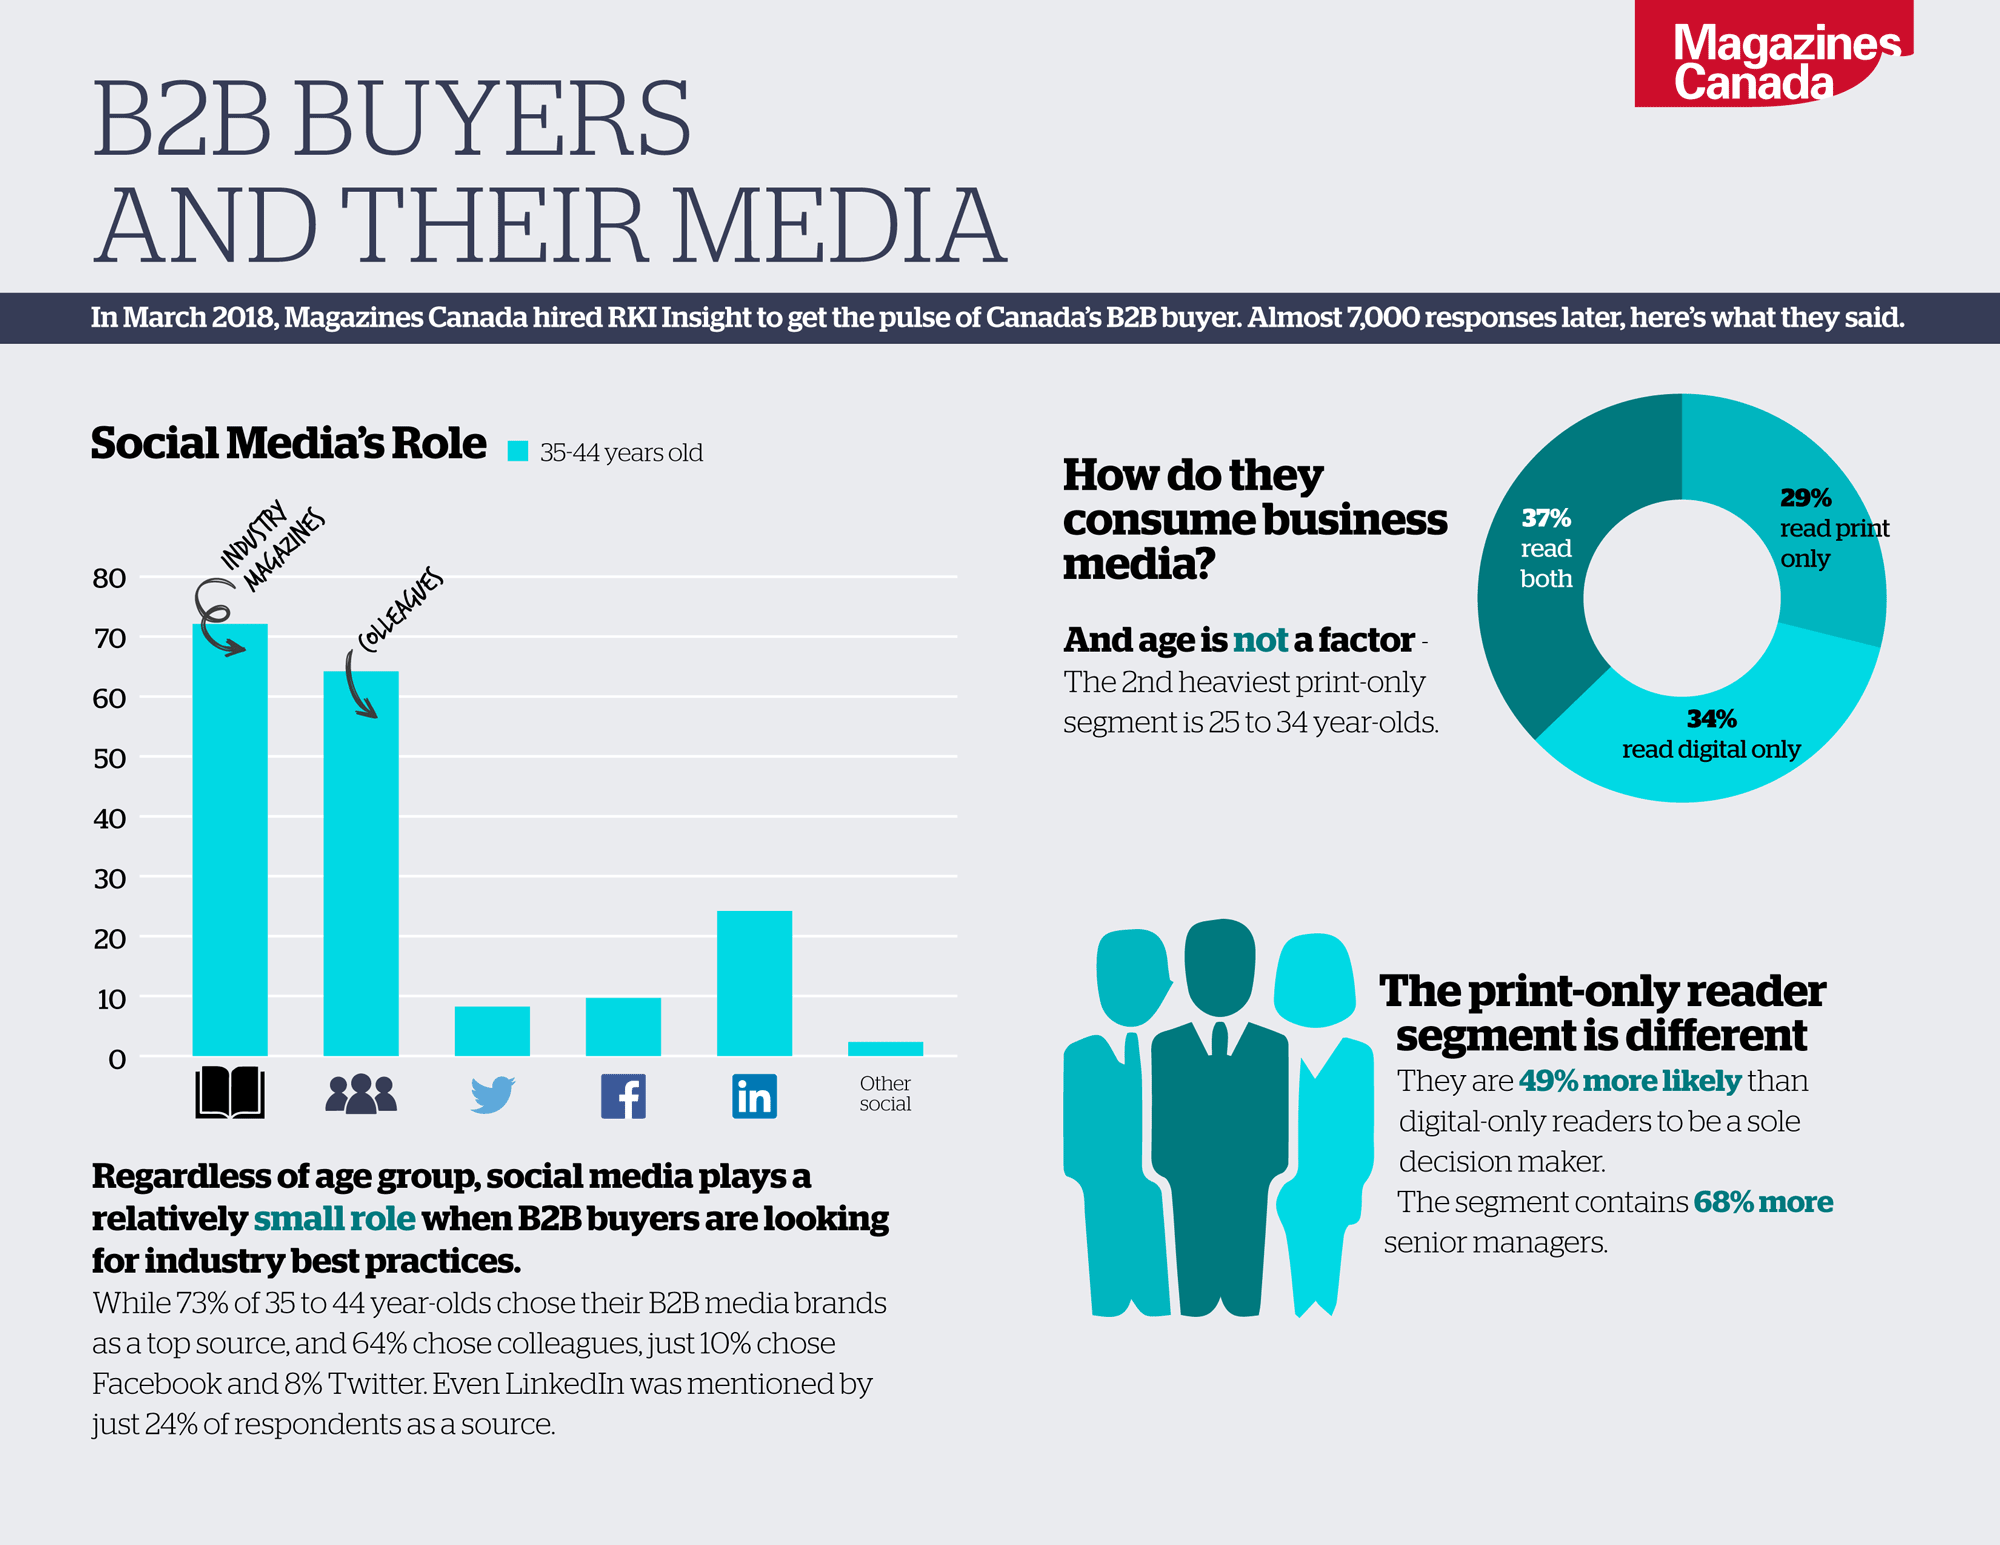 B2B Buyers and their Media: 1. Regardless of age group, social media plays a relatively small role when B2B buyers are looking for industry best practices. 2. How do B2B buyers consume business media? 29% read print only, 34% read digital only, and 37% read both. 3. The print-only reader segment is different. They are 49% more likely than digital-only readers to be a sole decision maker.